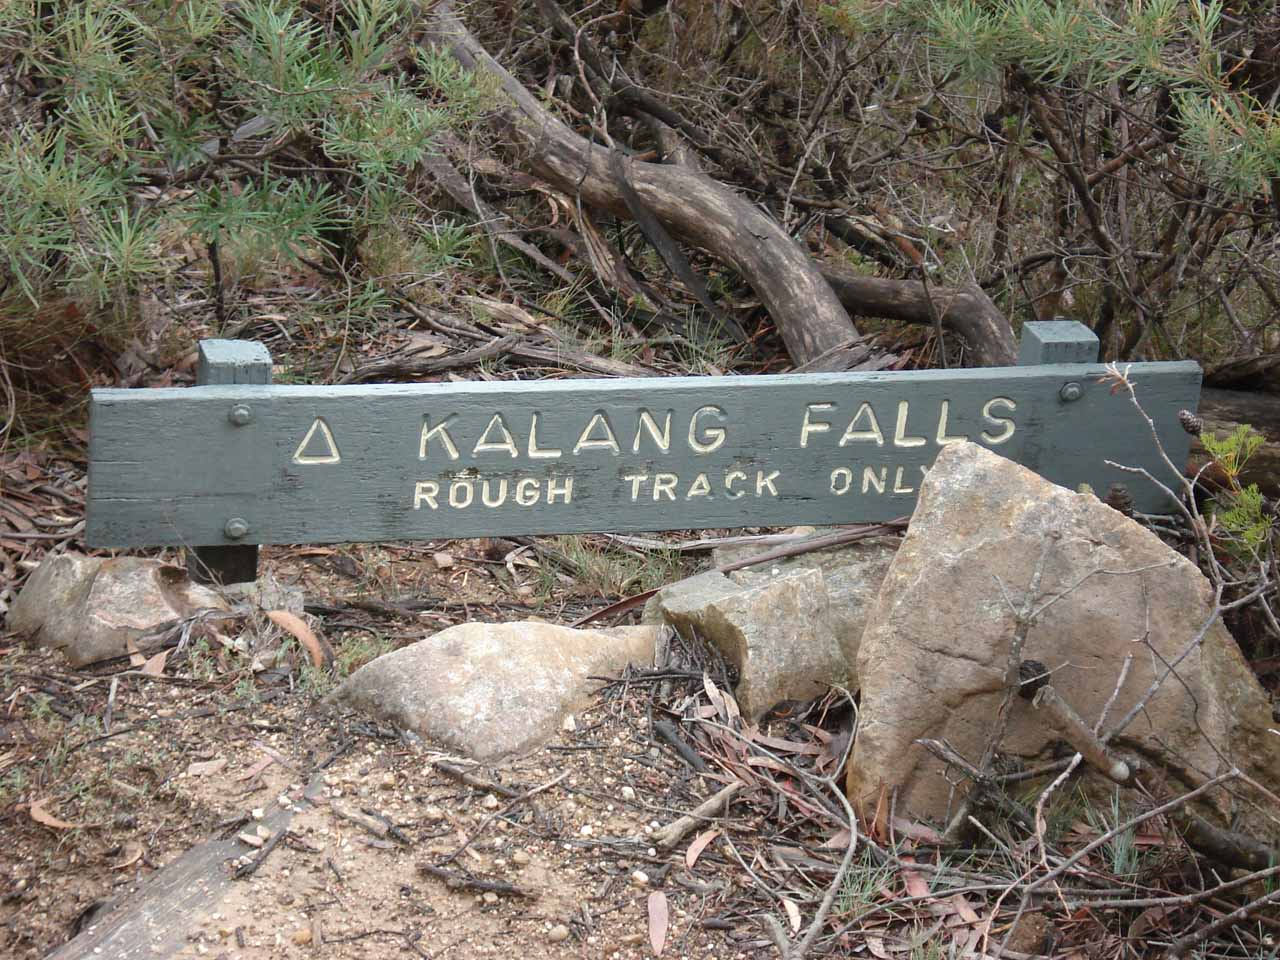 The Kalang Falls sign